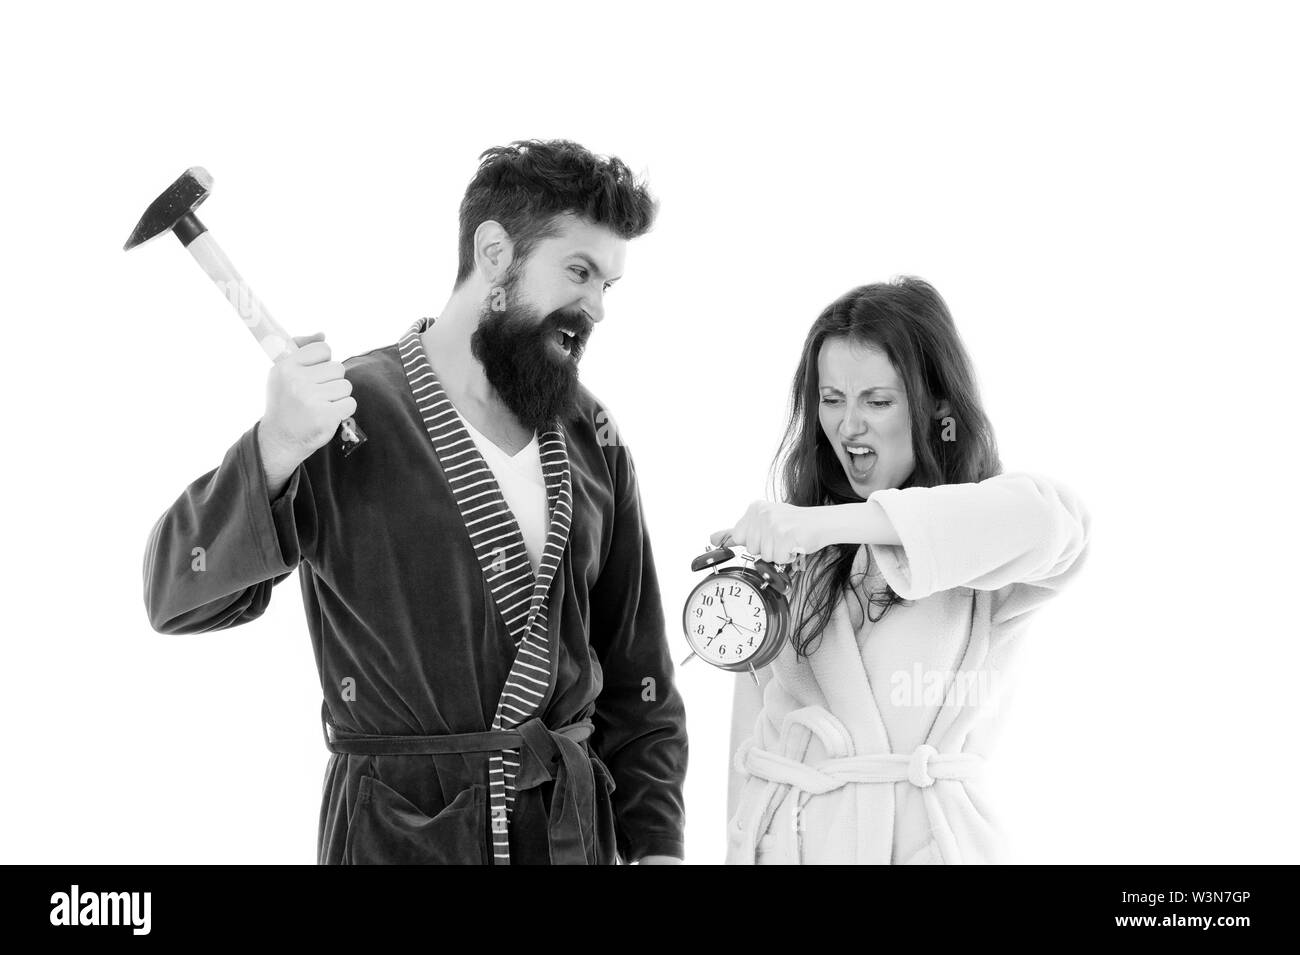 Its early time. Sleepy couple in love in morning time. Angry hipster and woman breaking alarm clock with hammer, lost time. Time will show. - Stock Image